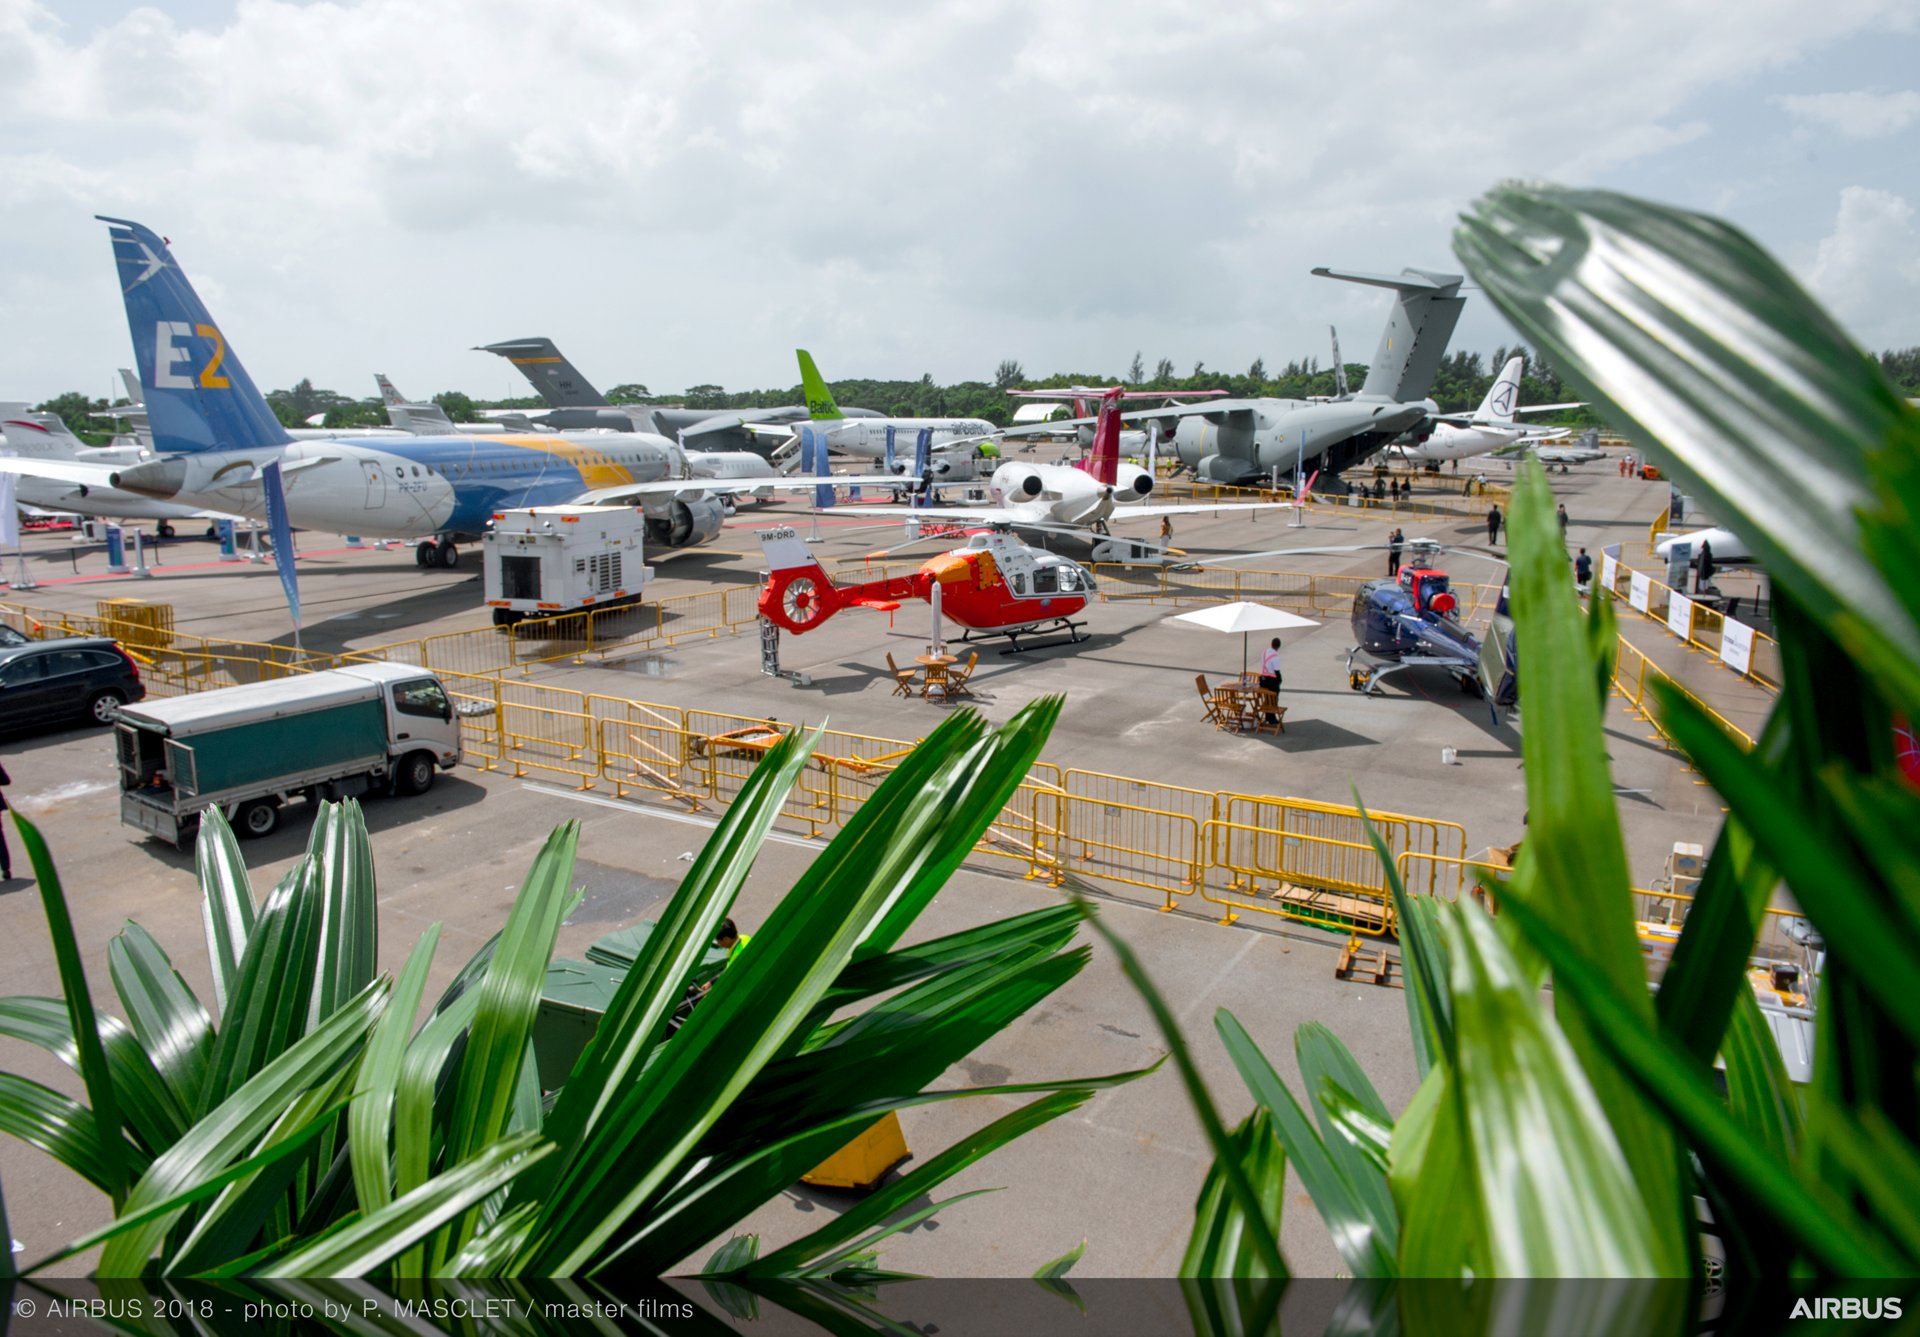 A wide range of Airbus products are on display at the 2018 Singapore Airshow, including the company's newest jetliner – the A350-1000 –  as well as an A400 military airlifter operated by the Royal Malaysian Air Force, and the H130 and H135 helicopters